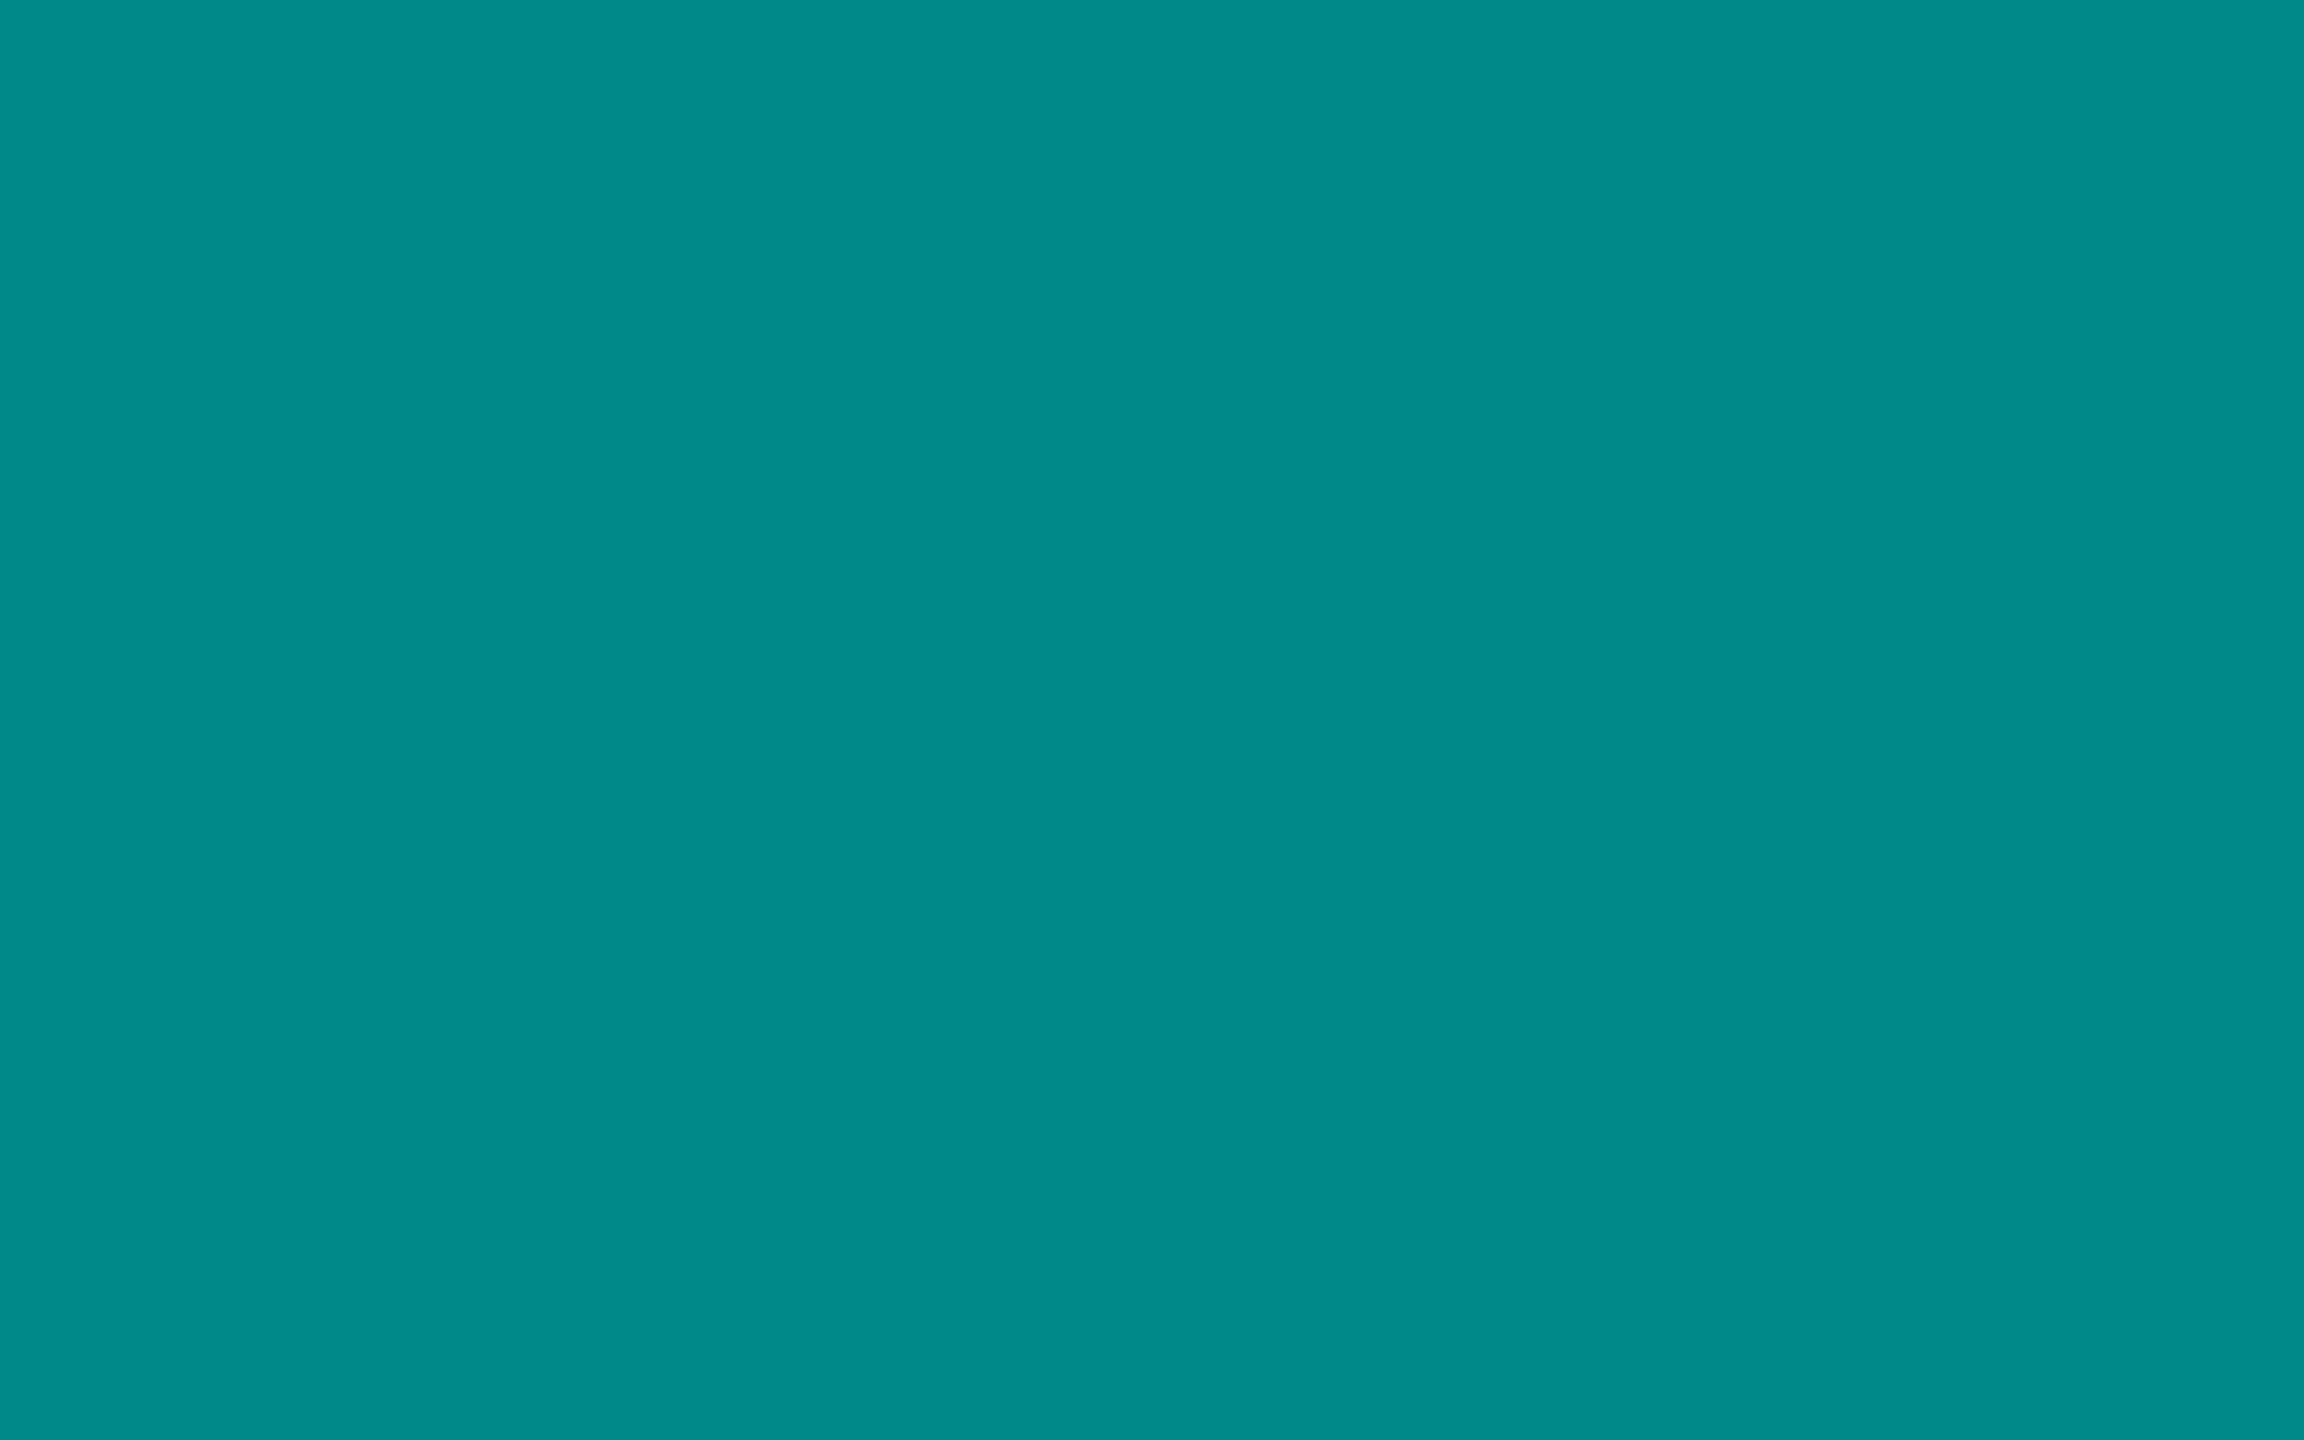 2304x1440 Dark Cyan Solid Color Background